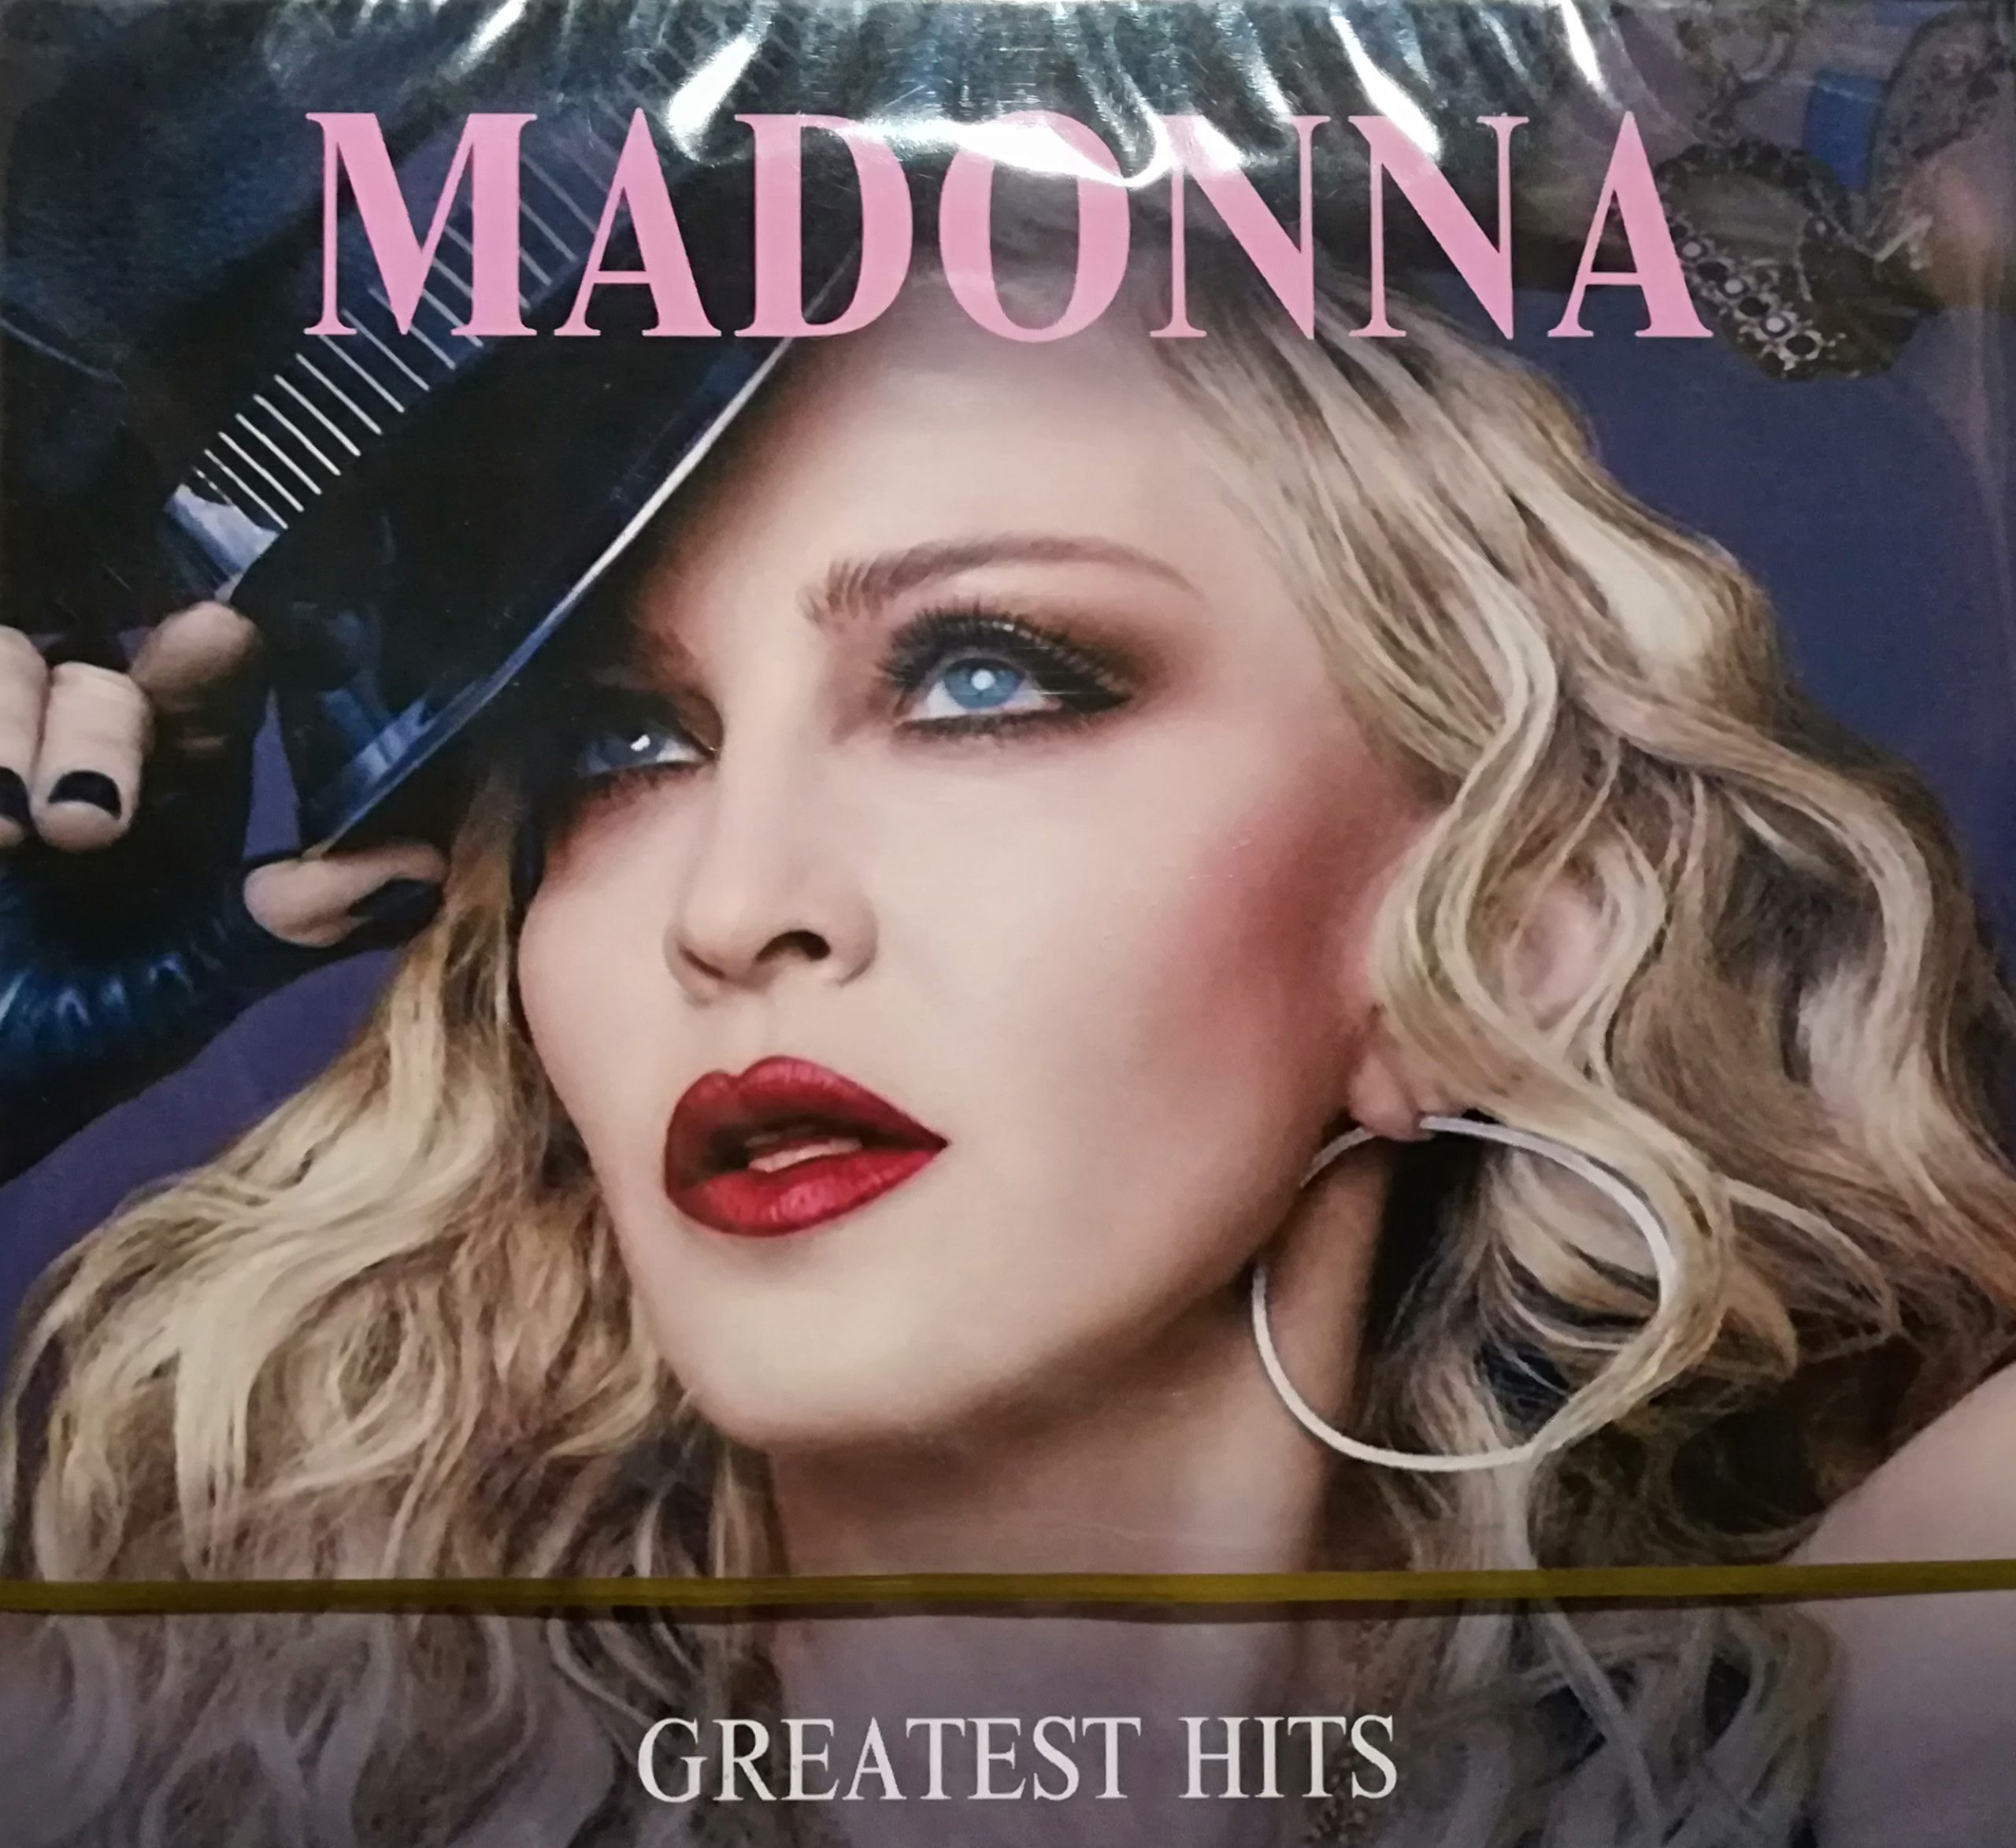 Madonna – Greatest Hits (2cd, digipak) (2020)